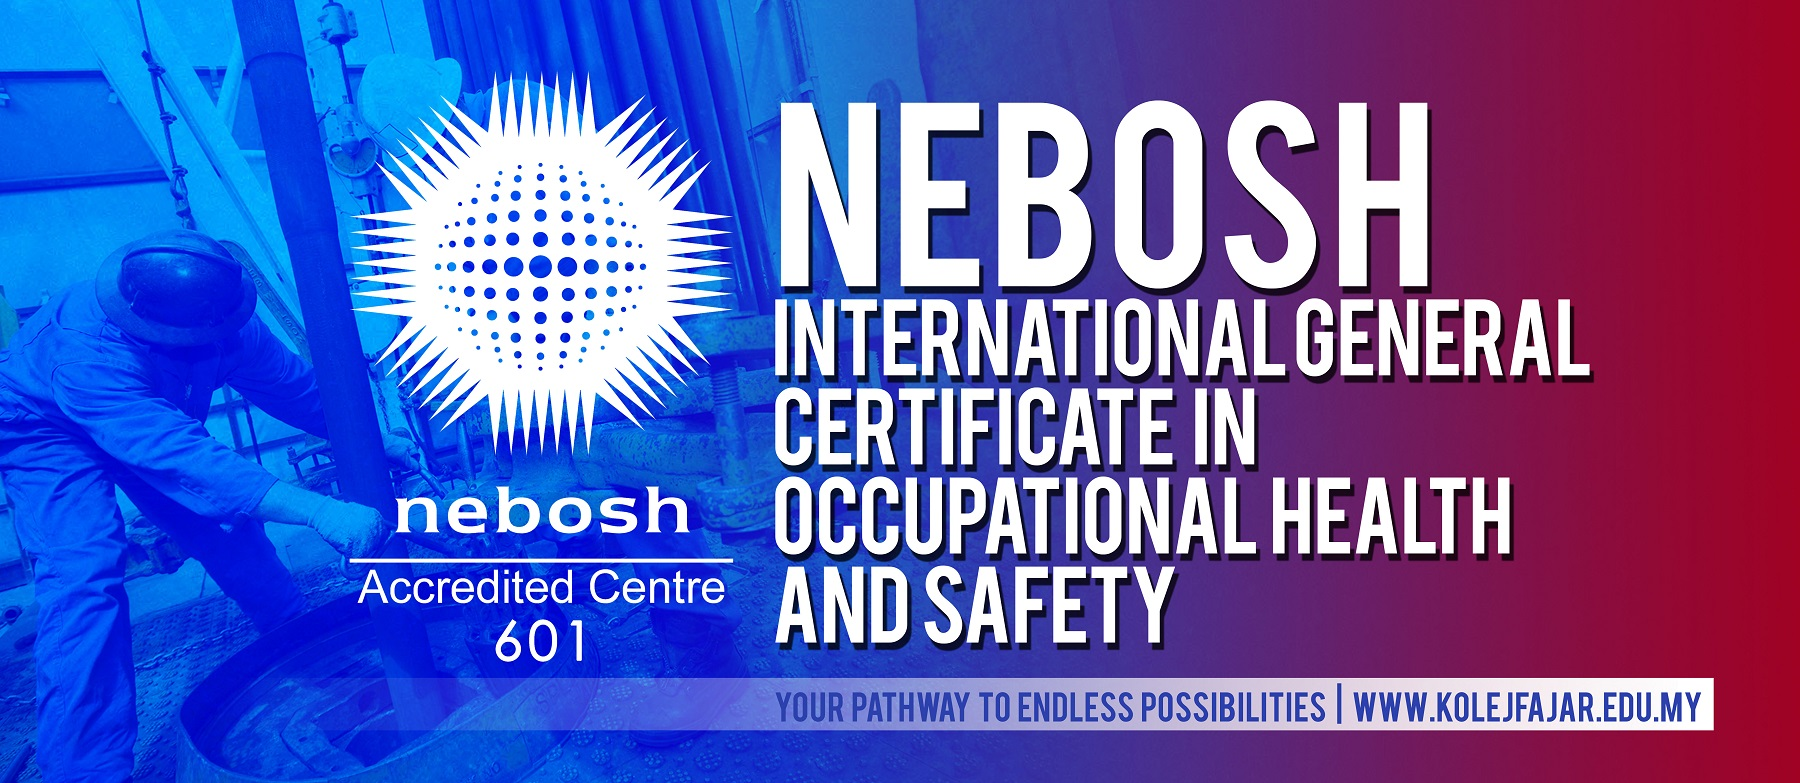 Achieve Recognition For Your Health And Safety Skills Knowledge Anywhere In The World With NEBOSH International General Certificate Occupational